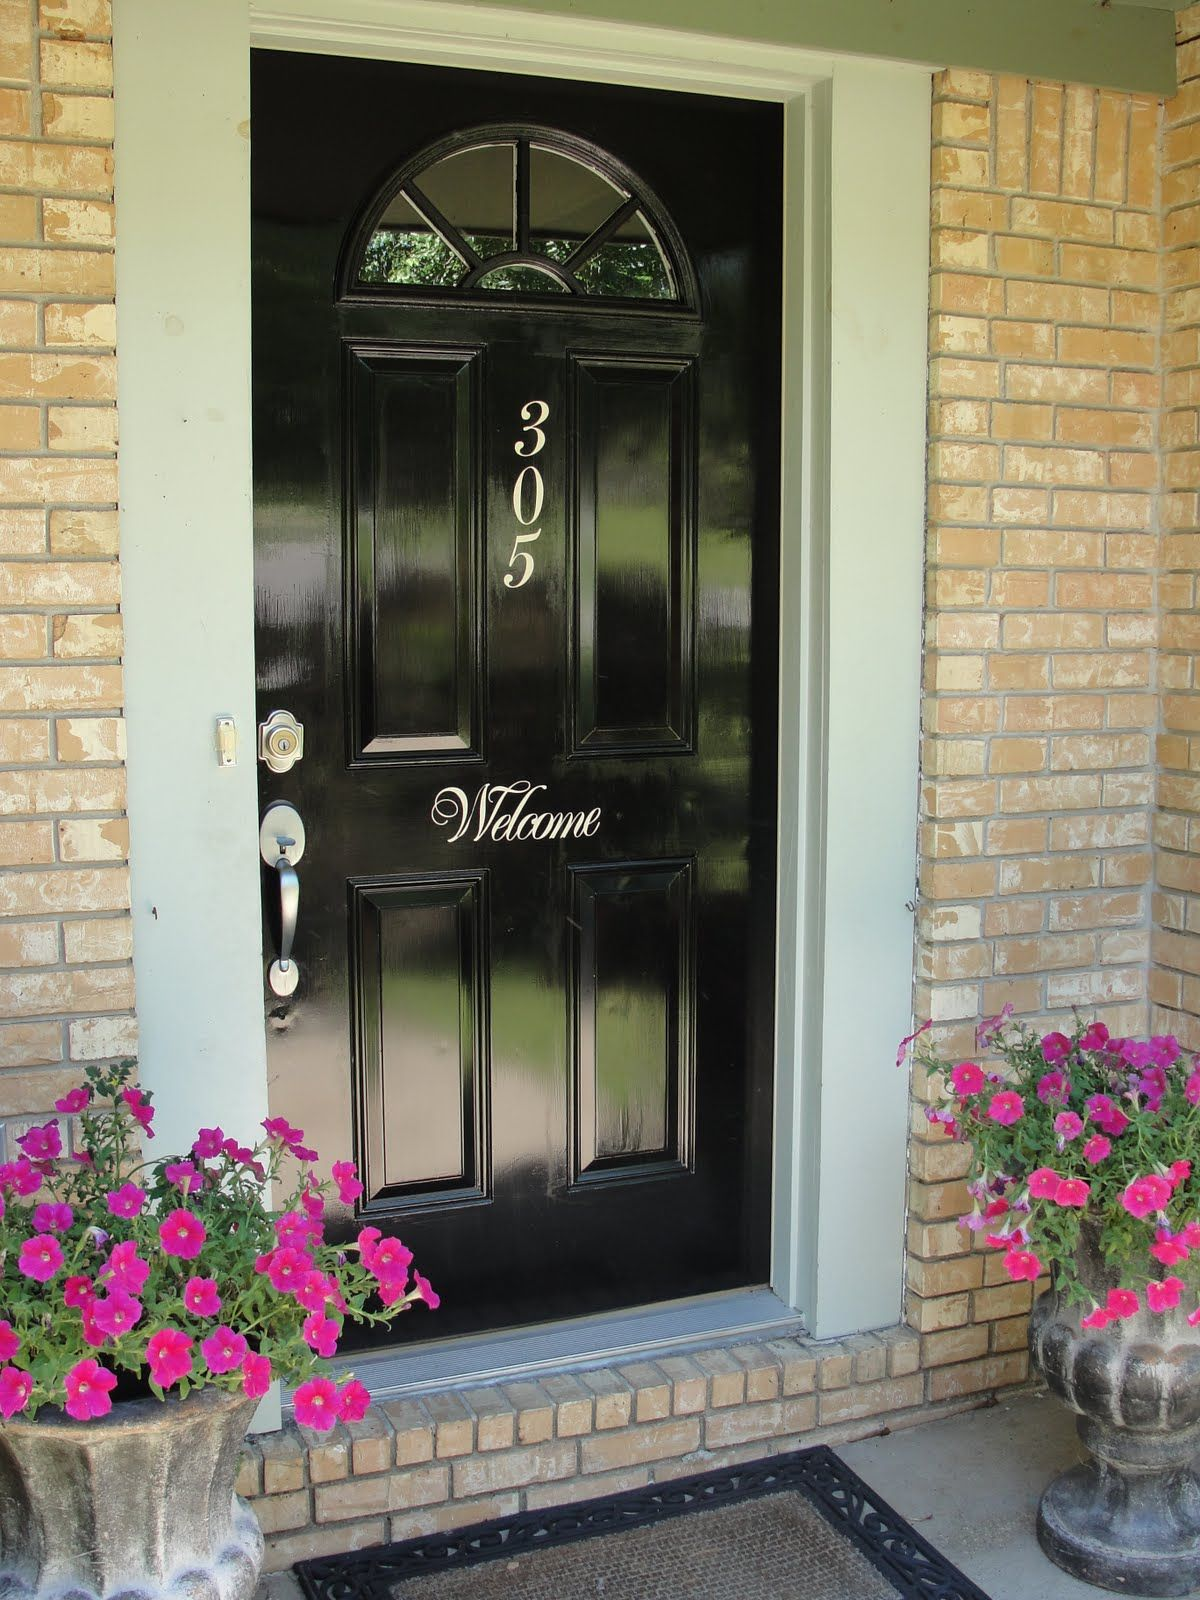 Shiny Black Cant Go Wronglike The Painted On S But Could Do - Front door ideas